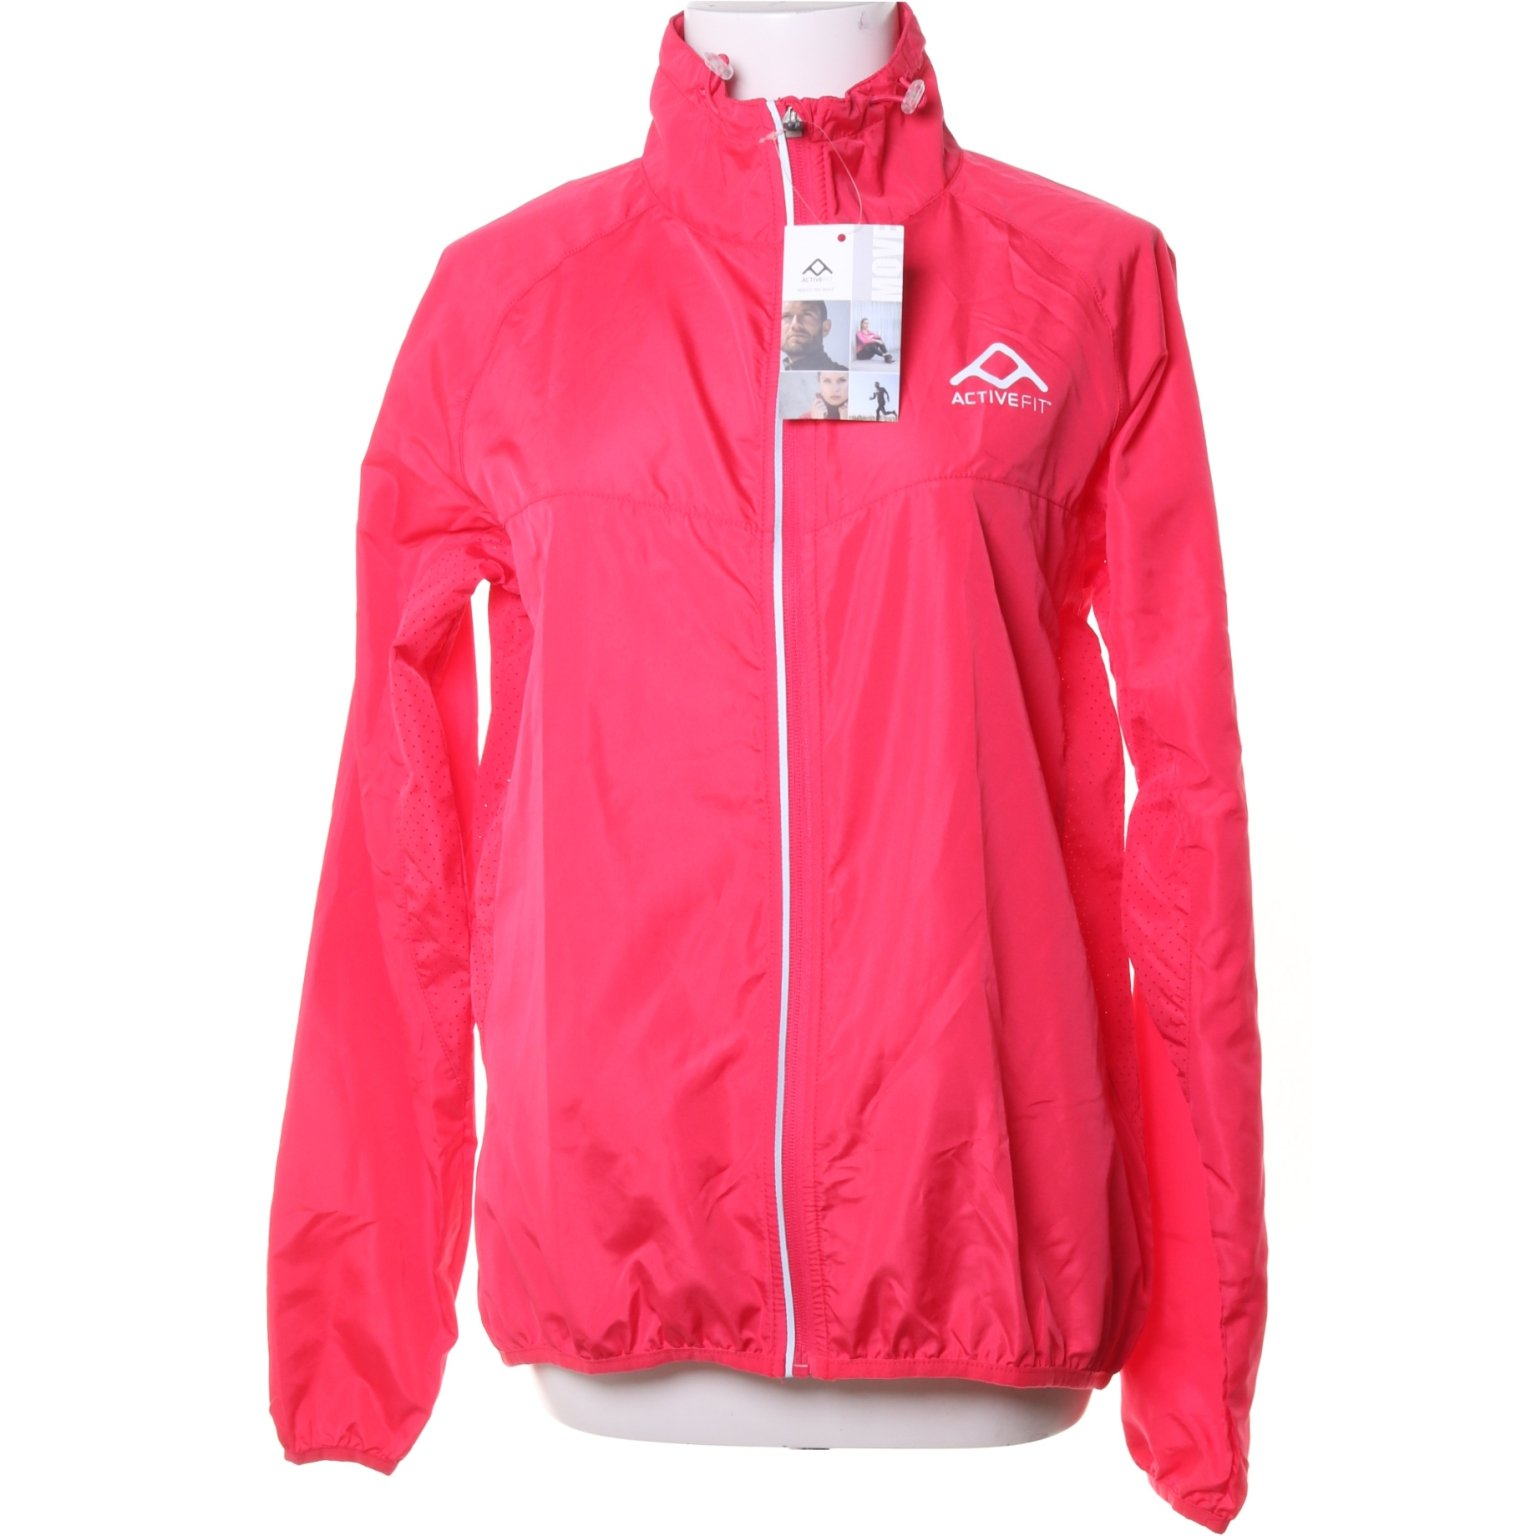 Active Fit, Vindjacka, Strl: L, ACTIVE FIT RUNNING JACKET, Rosa